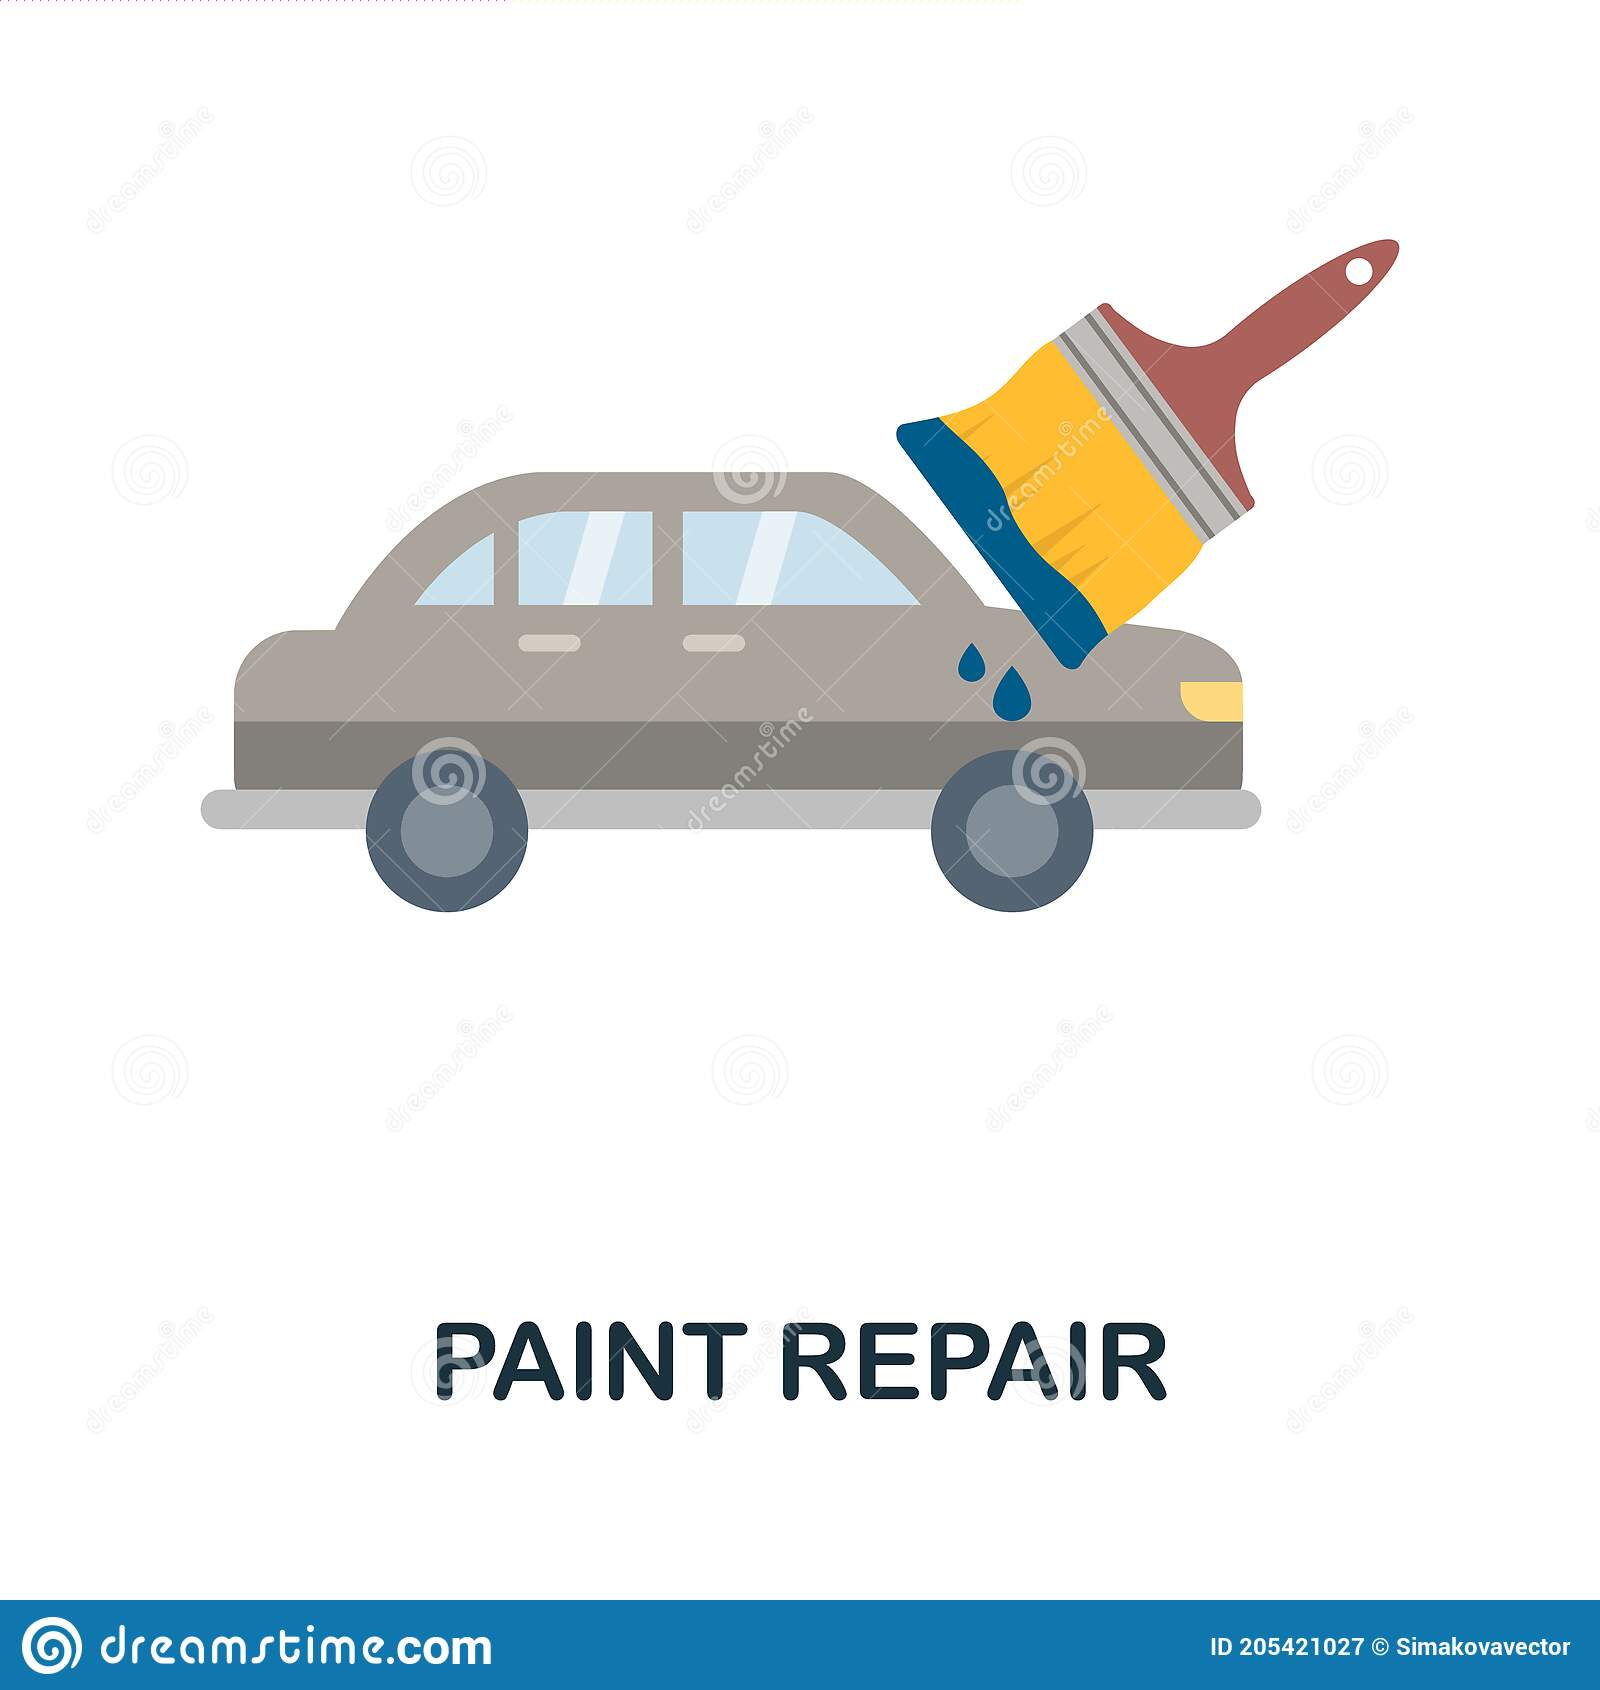 Car Paint Repair Stock Illustrations 1 743 Car Paint Repair Stock Illustrations Vectors Clipart Dreamstime